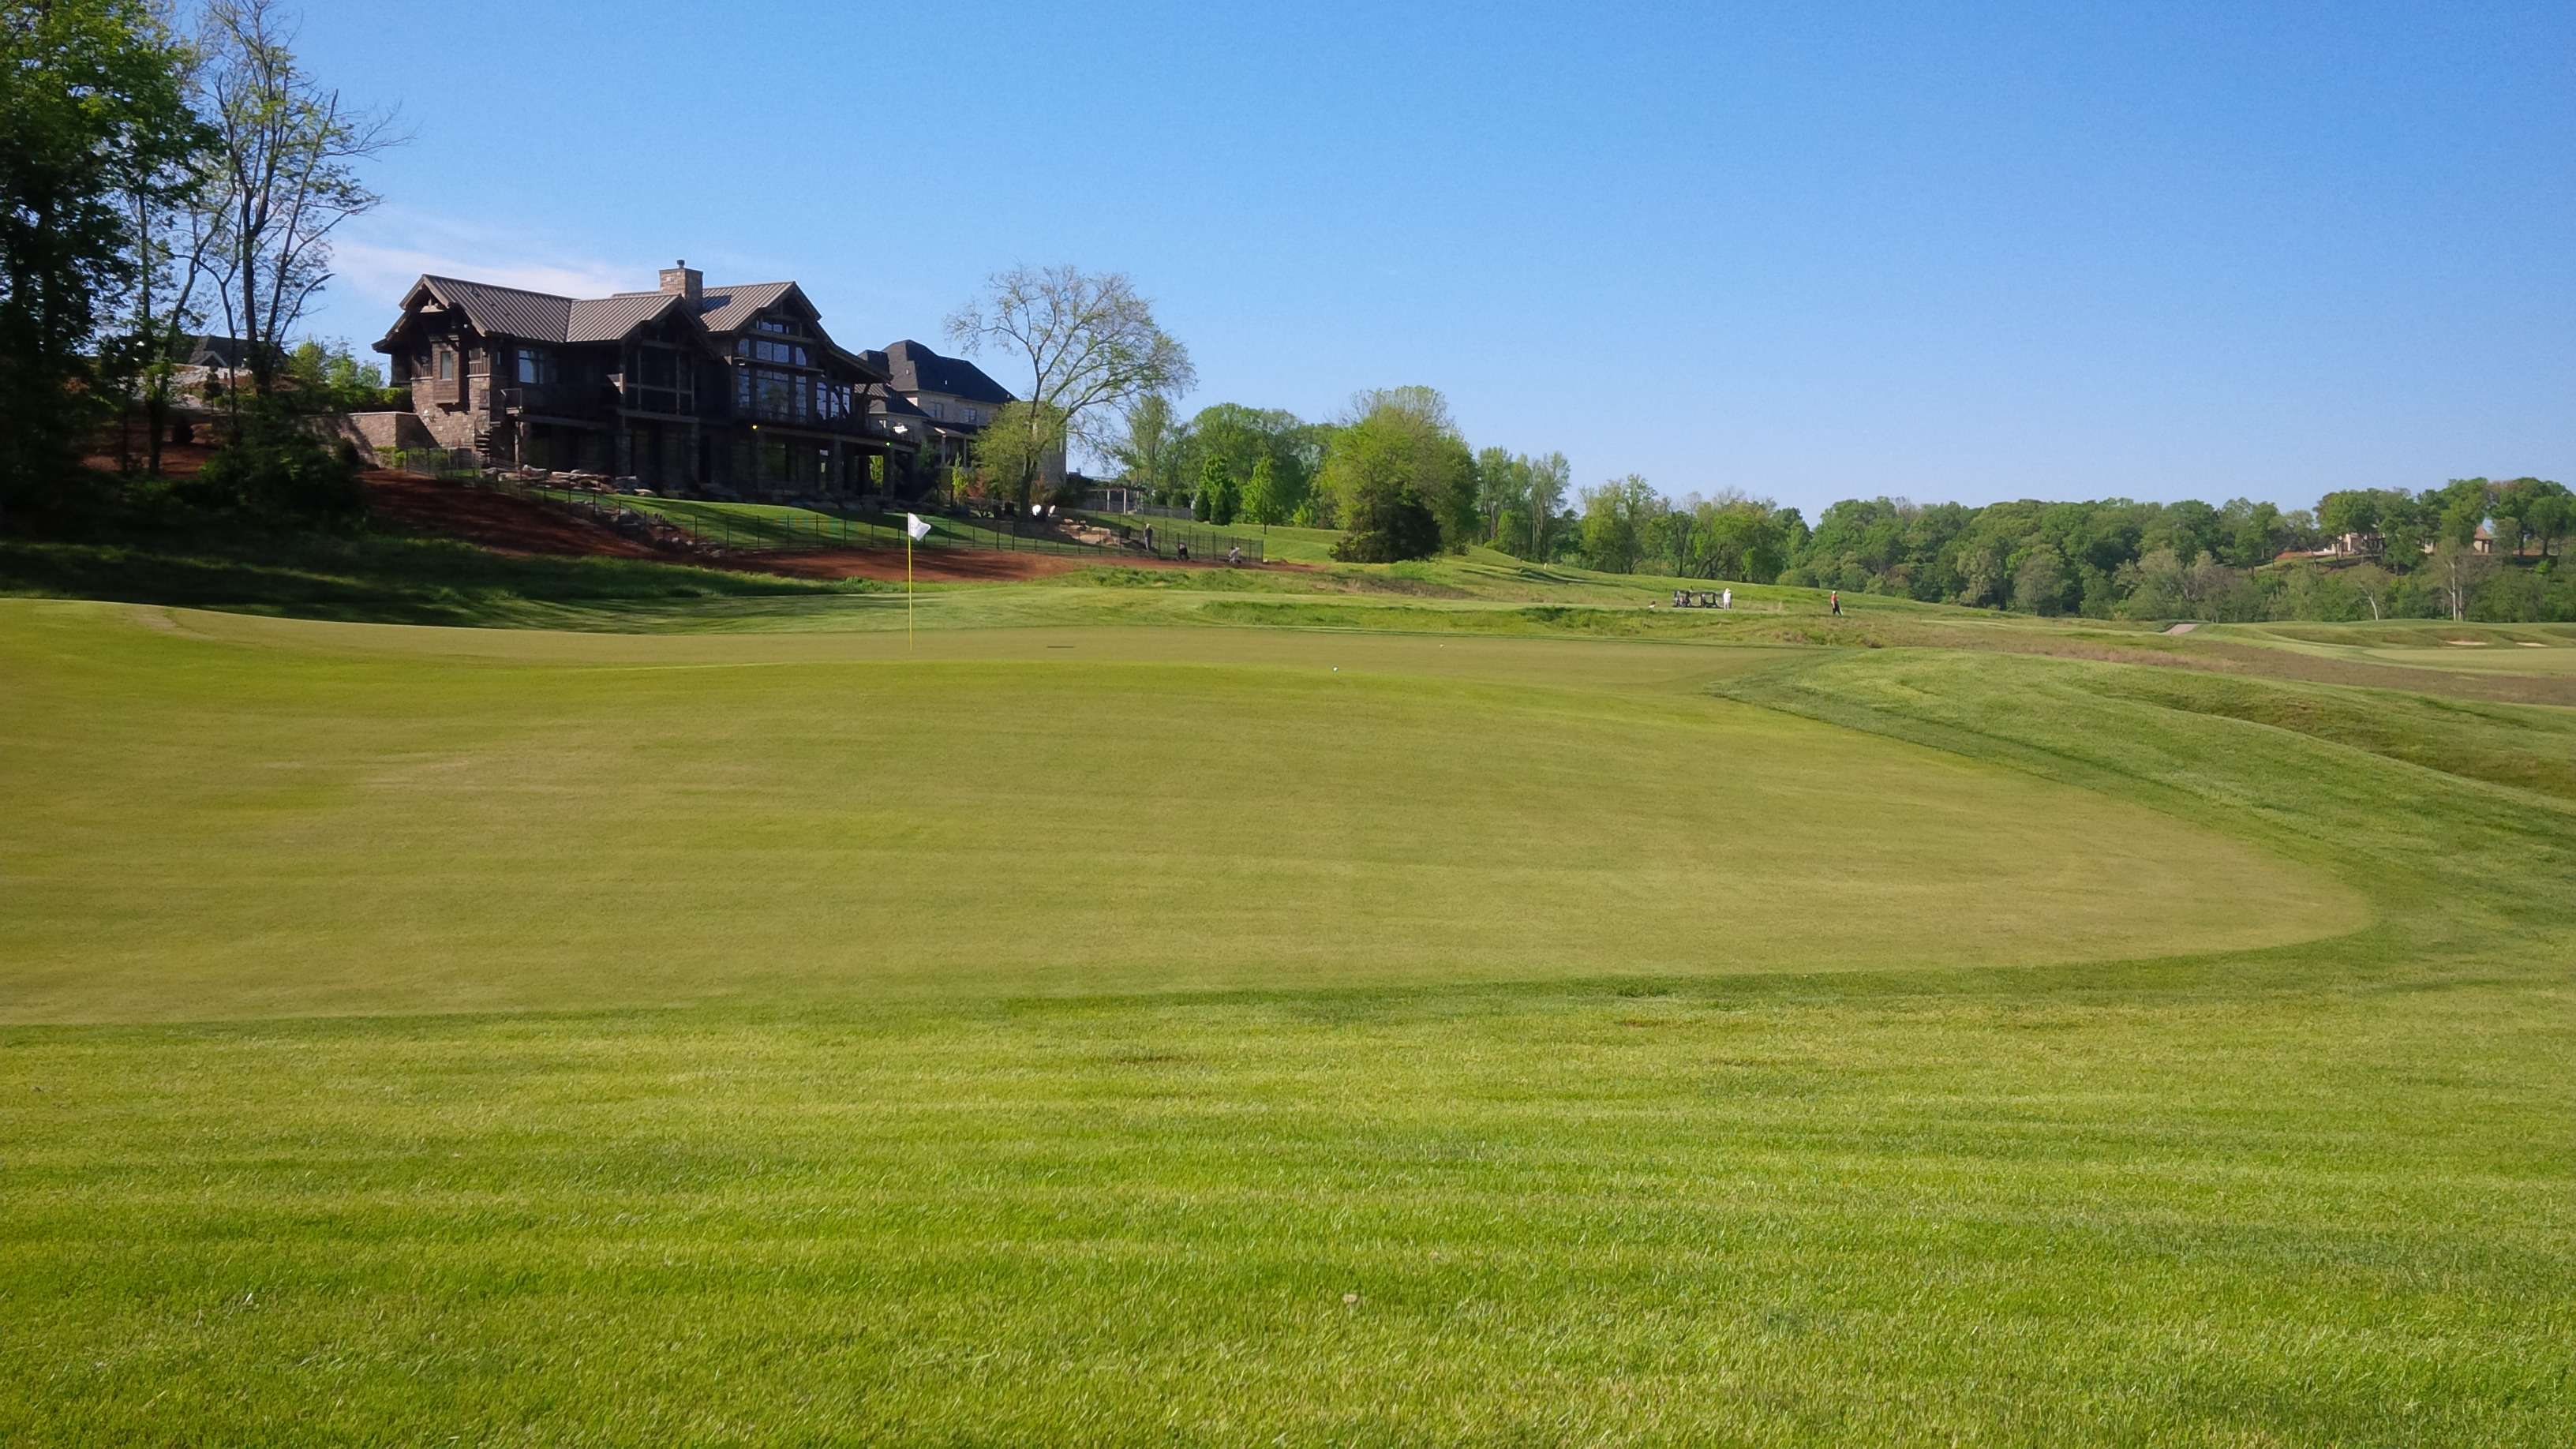 The Club at Olde Stone - the Crown Jewel of Mid-South Golf ...